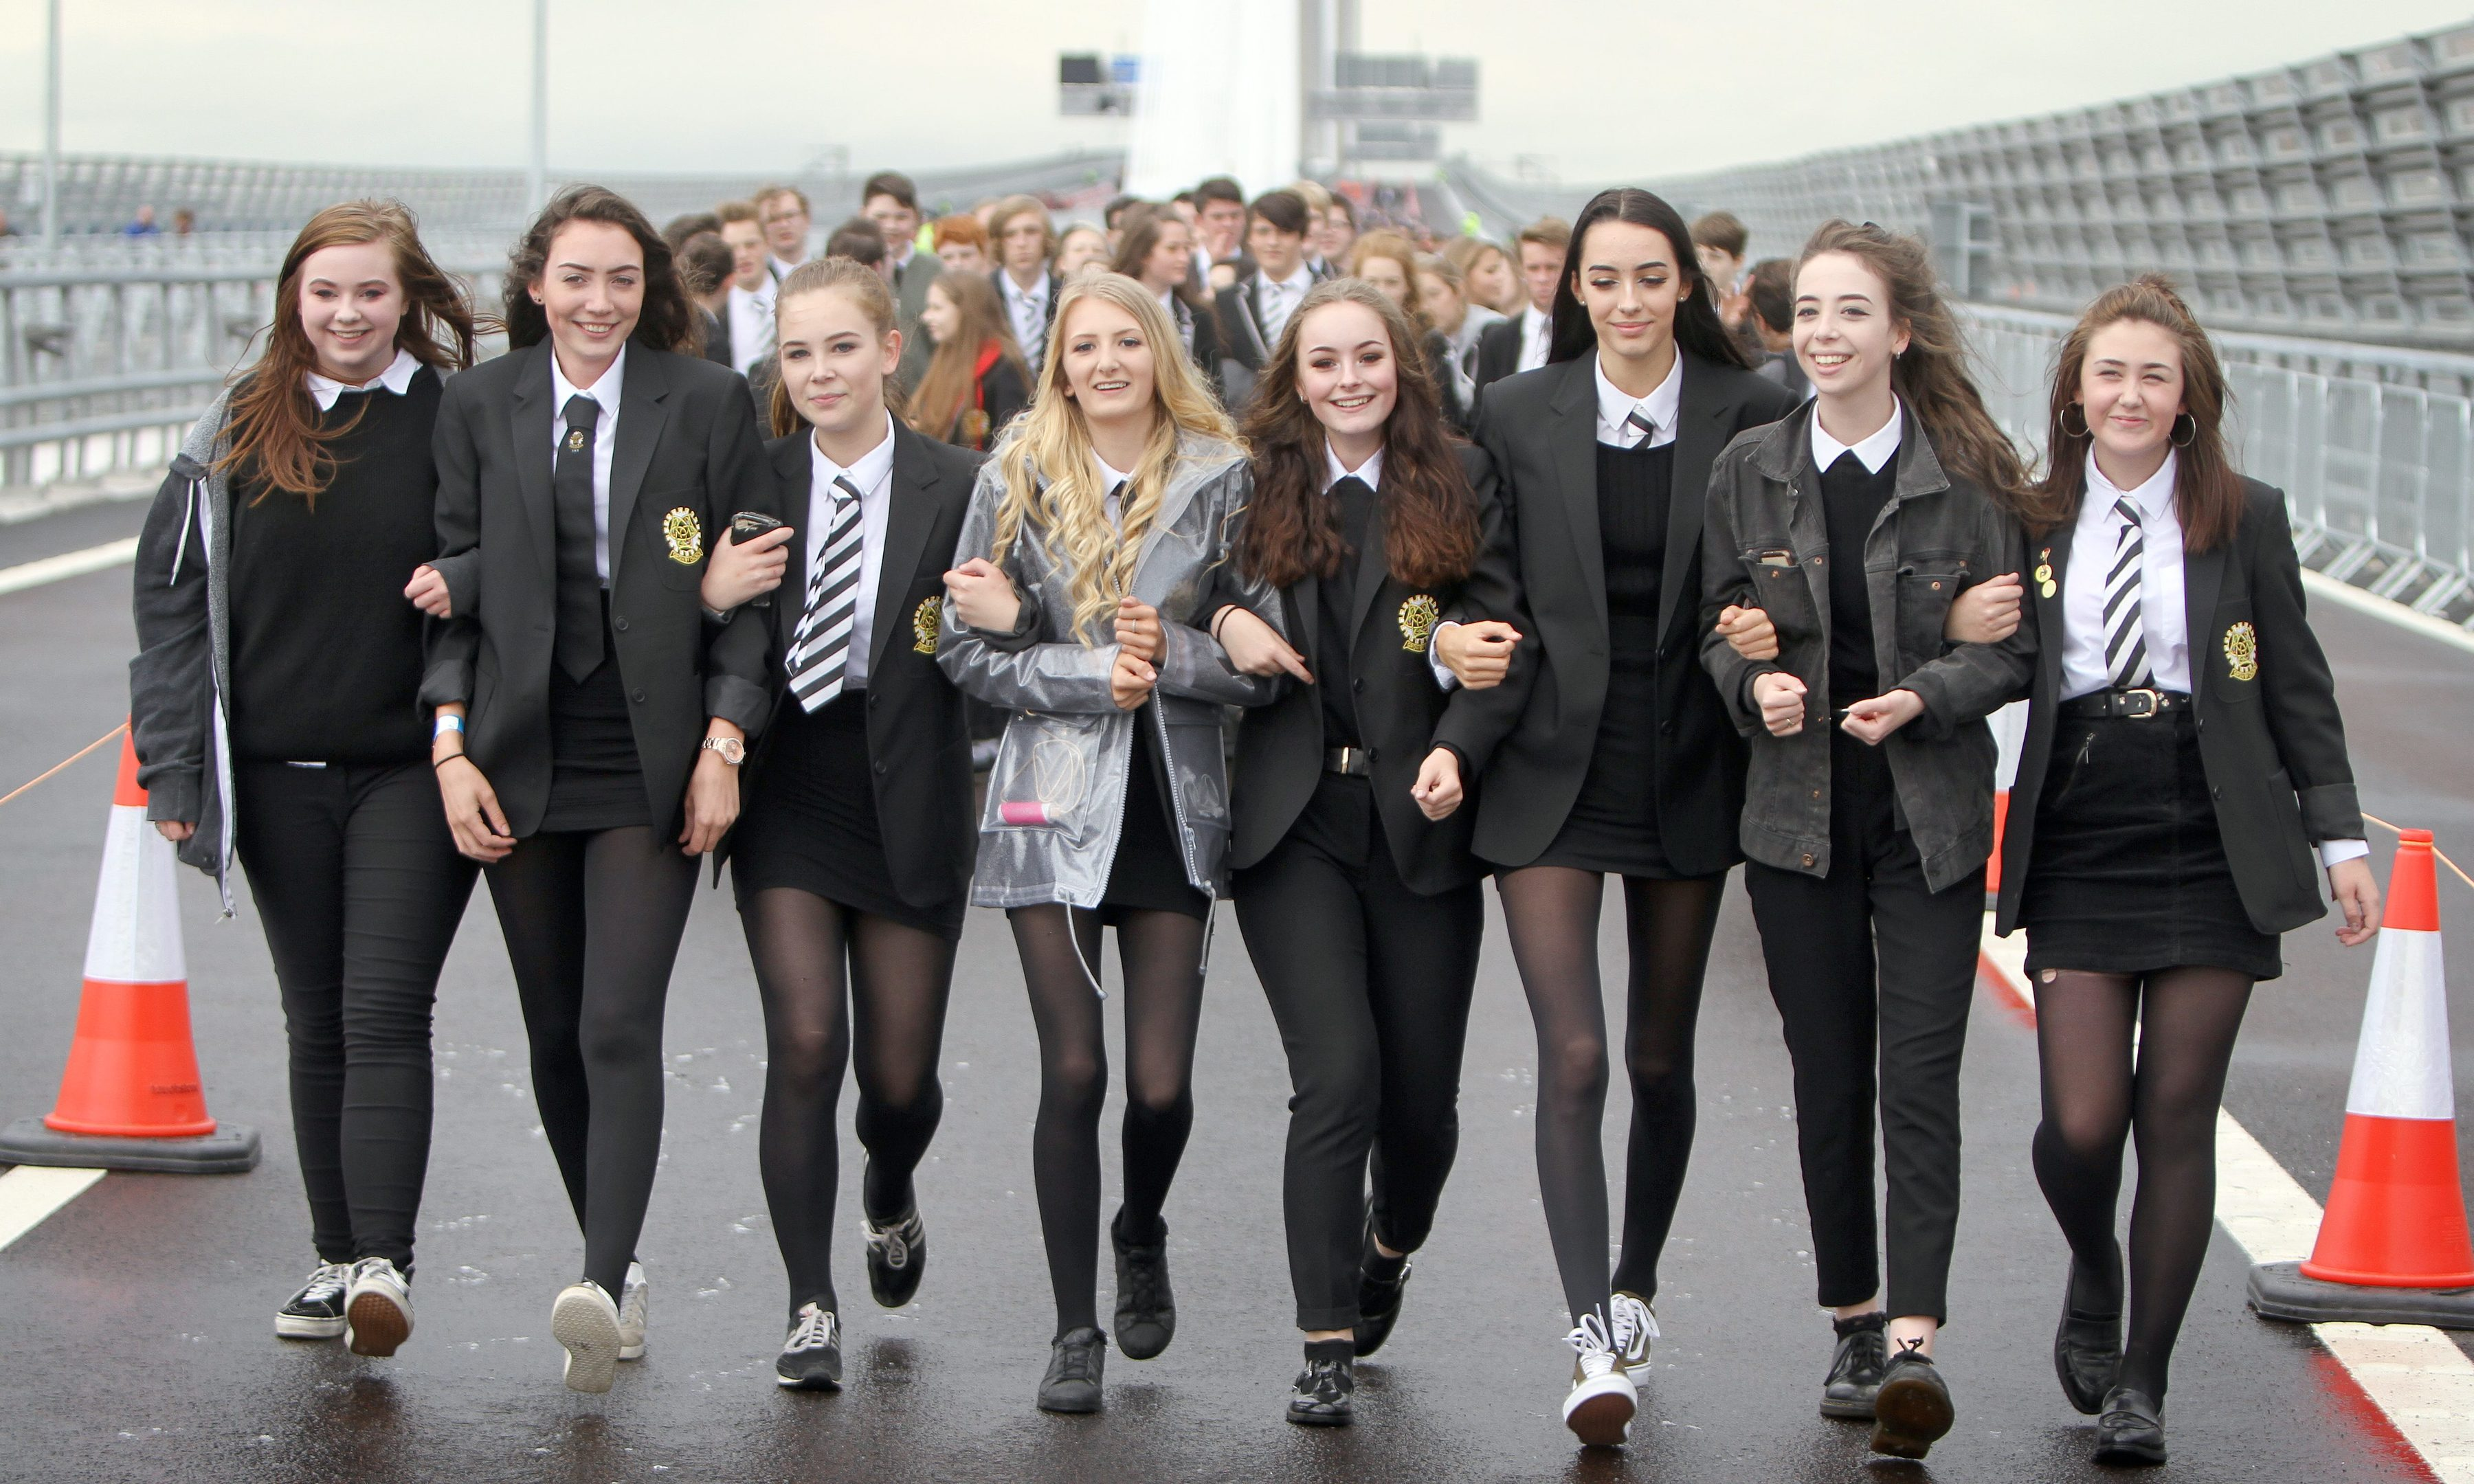 Pupils from Inverkeithing High crossing the bridge.